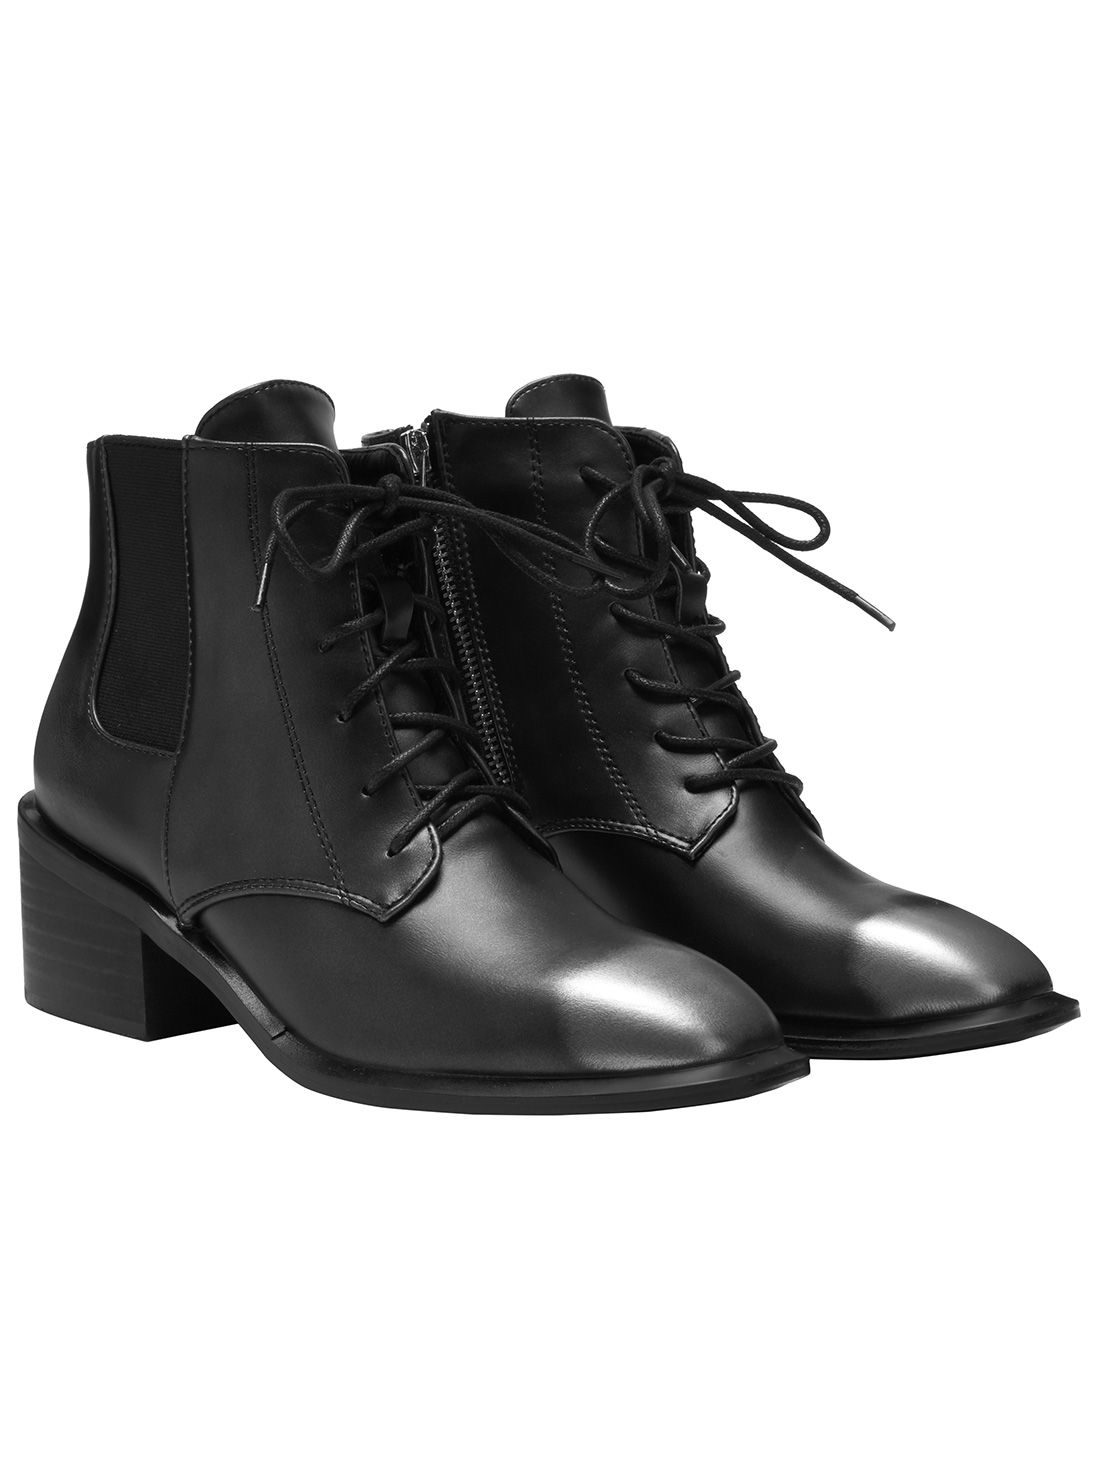 dc1ff42f47263 Grey Pointed Toe Lace Up Ankle Boots -SheIn(Sheinside) | Gothic ...